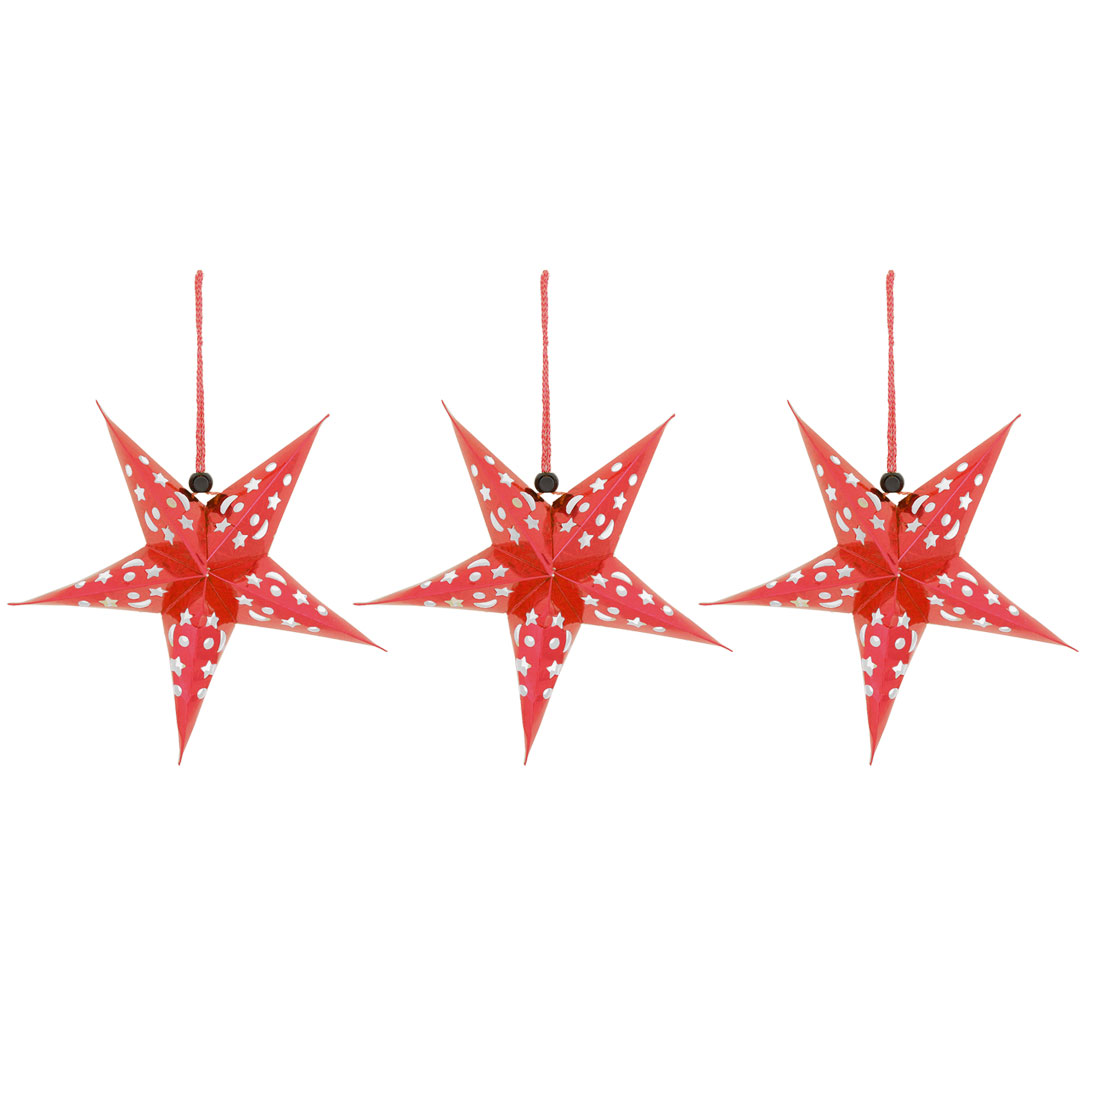 Unique Bargains Christmas Paper Star Shaped DIY Crafting String Hanging Ornament Red 3pcs